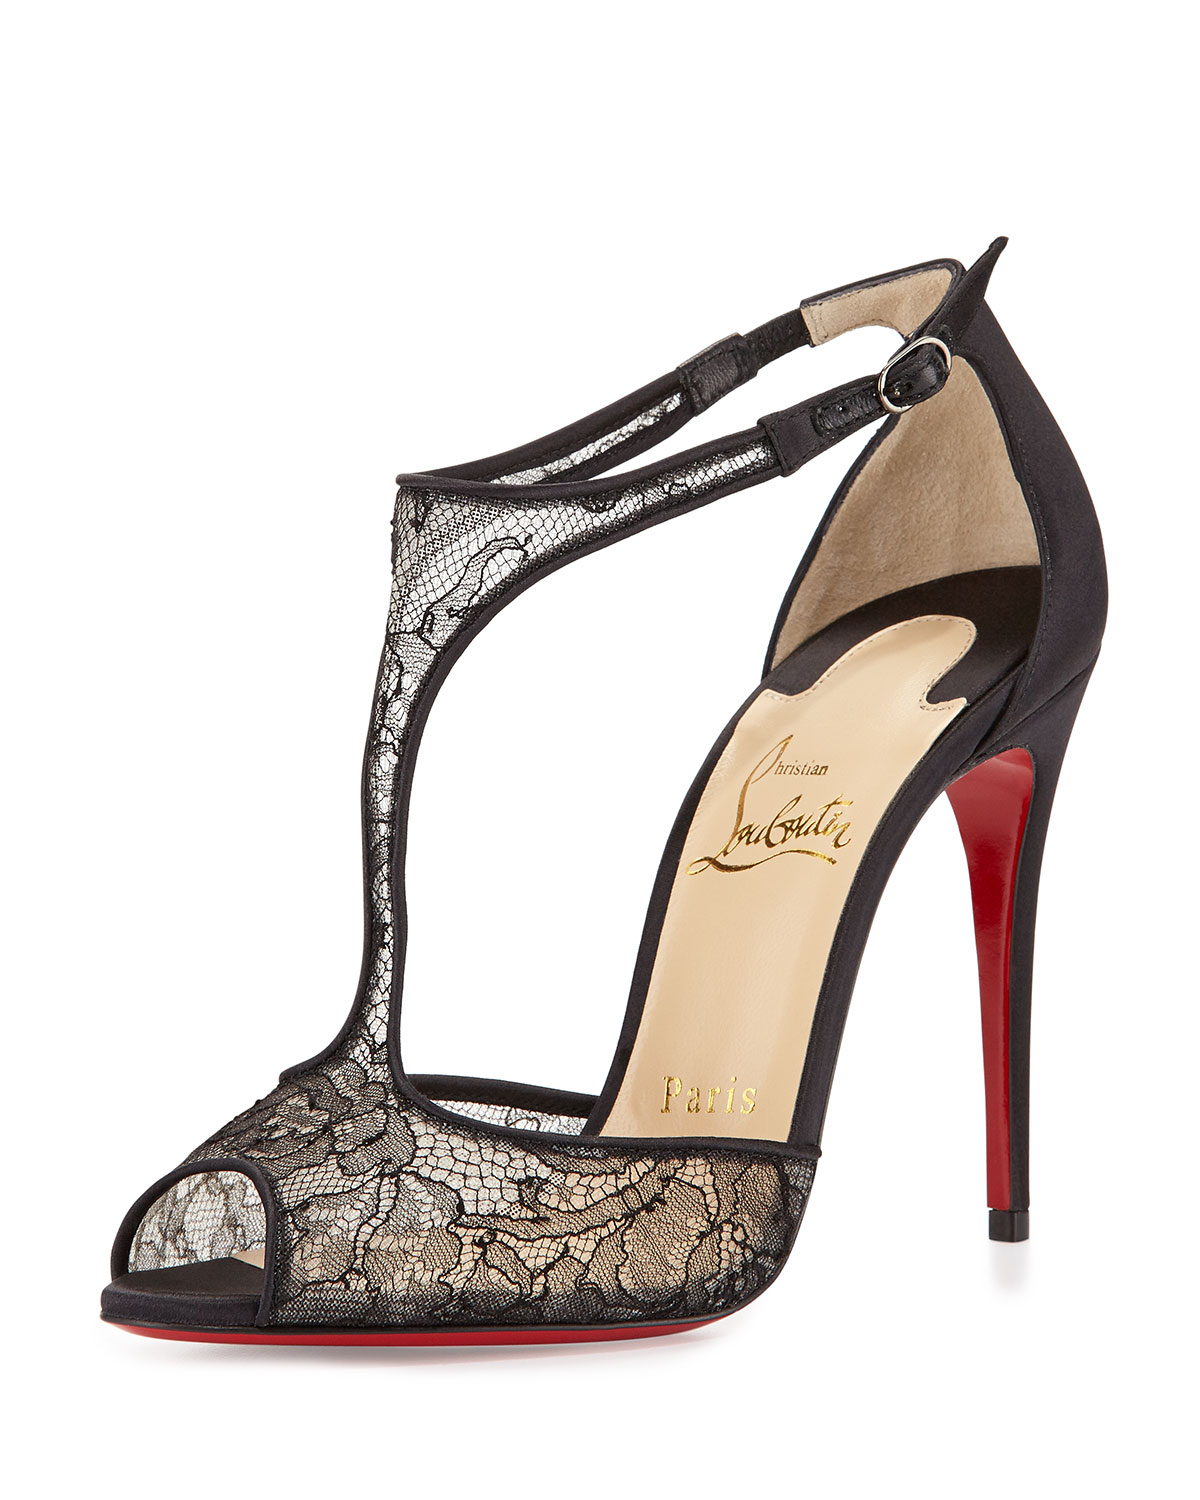 clearance clearance under 70 dollars Christian Louboutin Glitter-Accented Slingback Sandals cheap for sale cheap cost ZOjGY5aEc